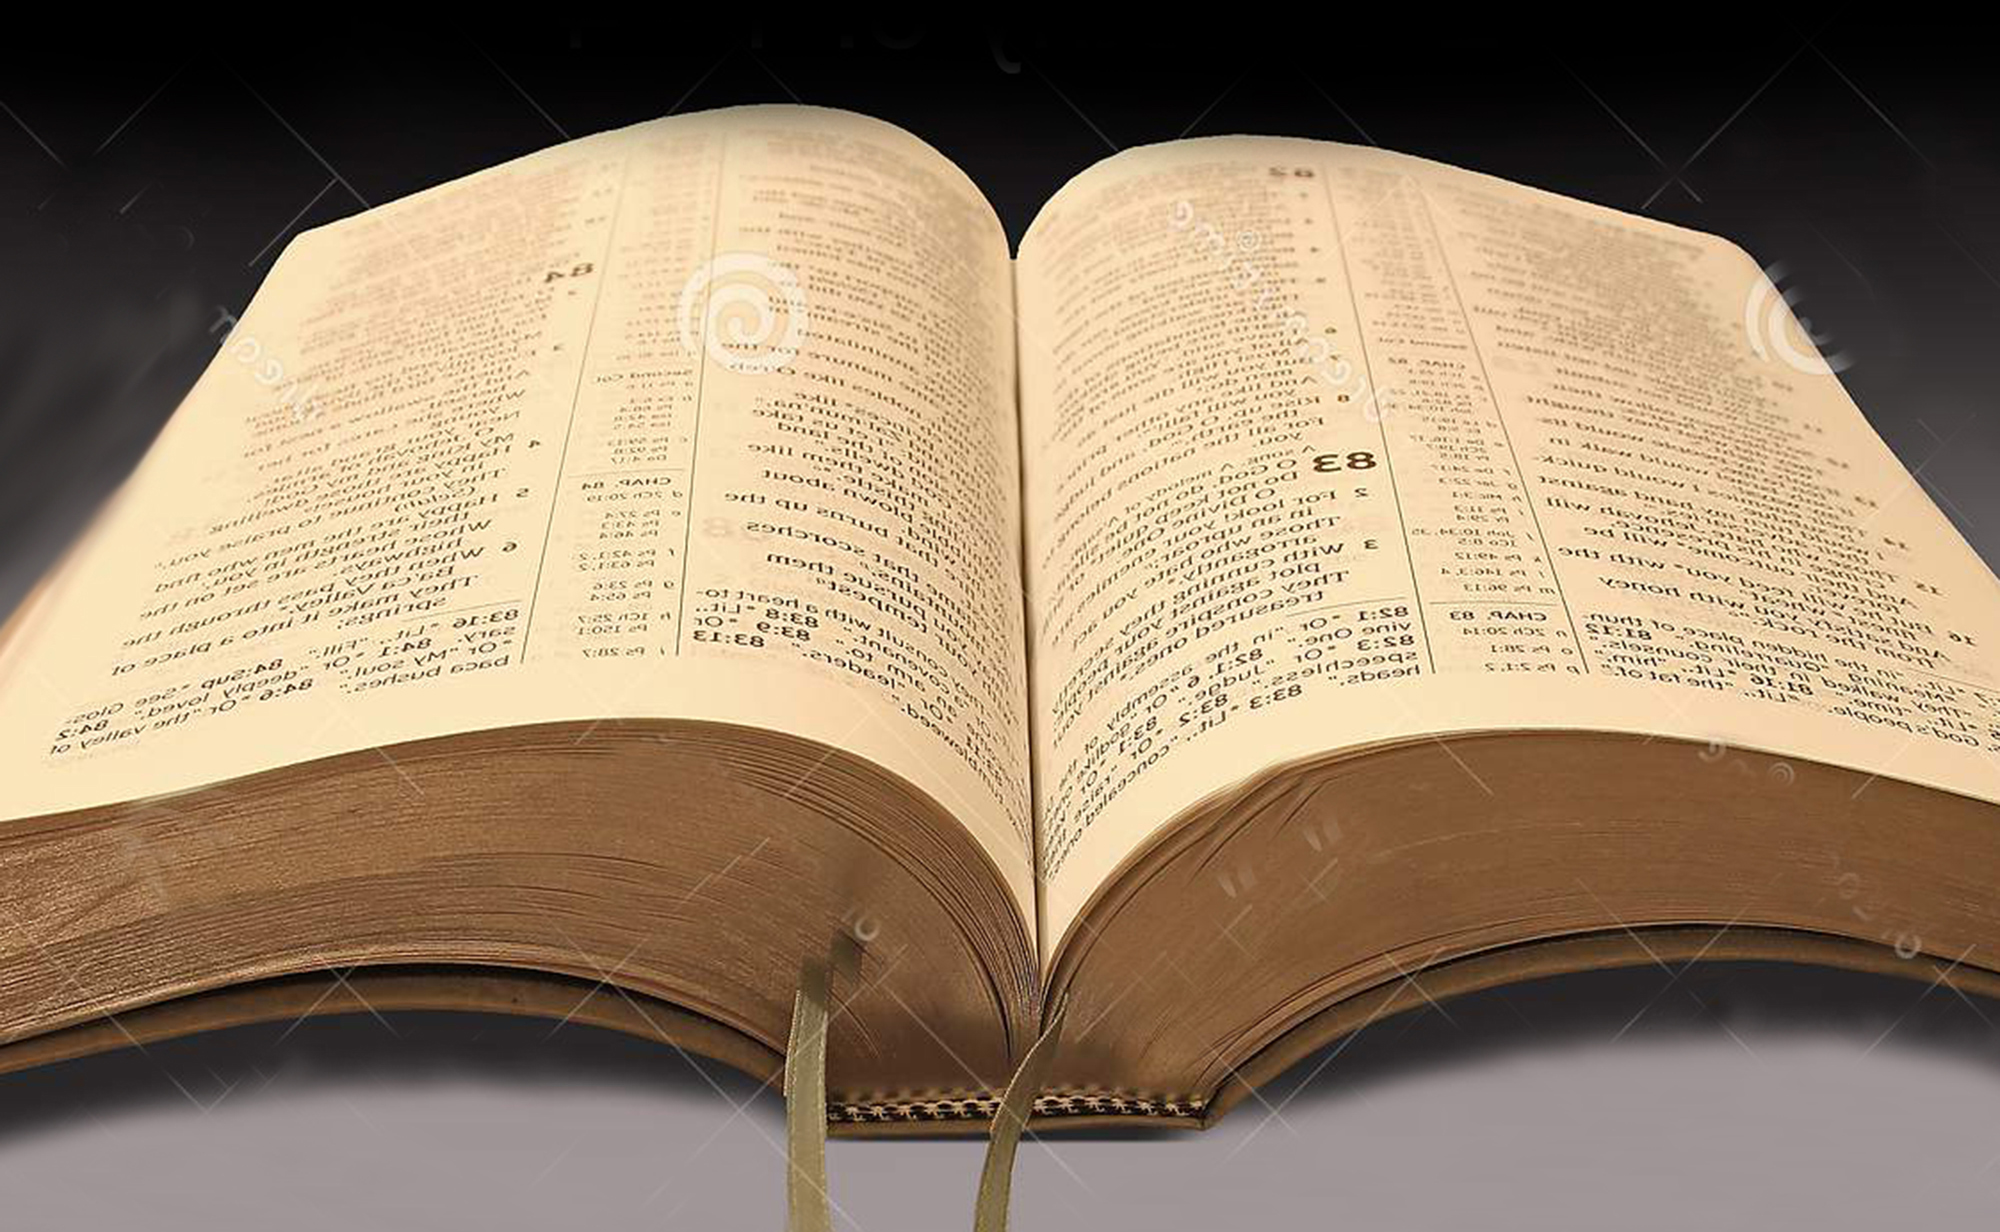 Image of book opened to scripture